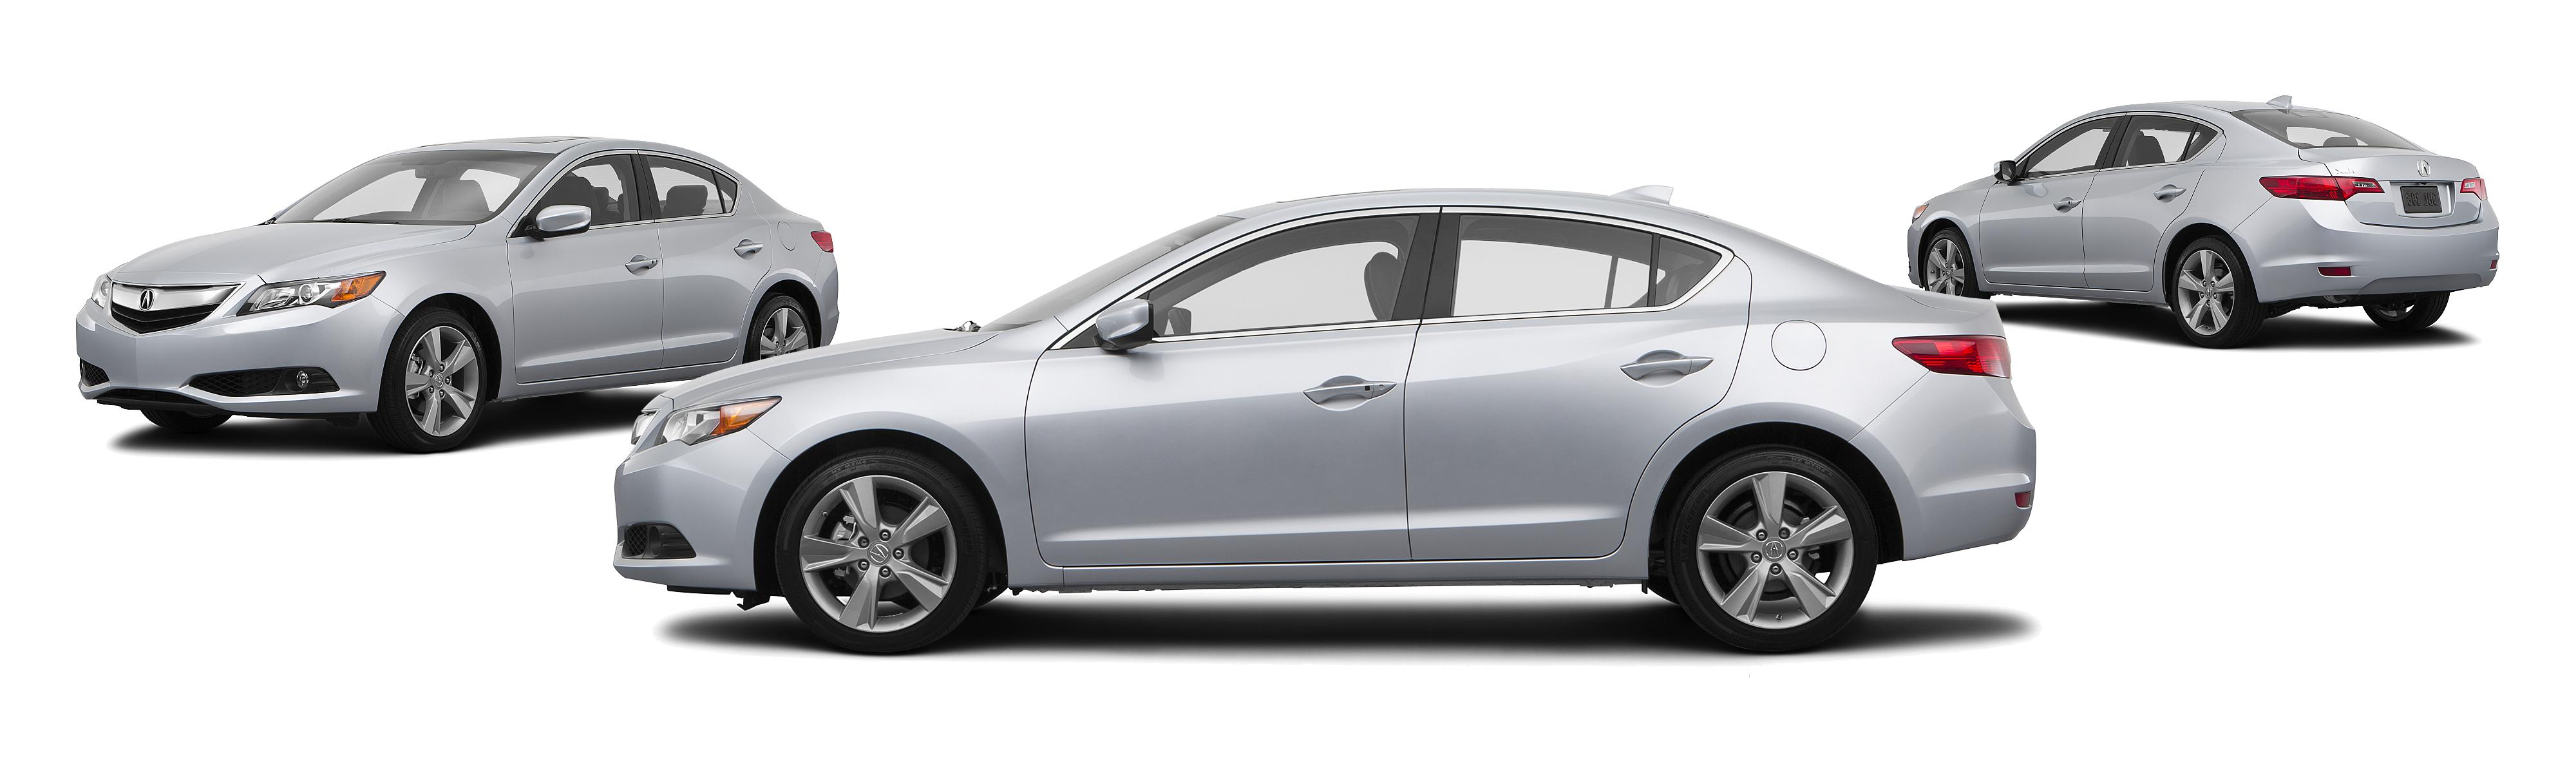 photo acura photos sedan features reviews ilx price